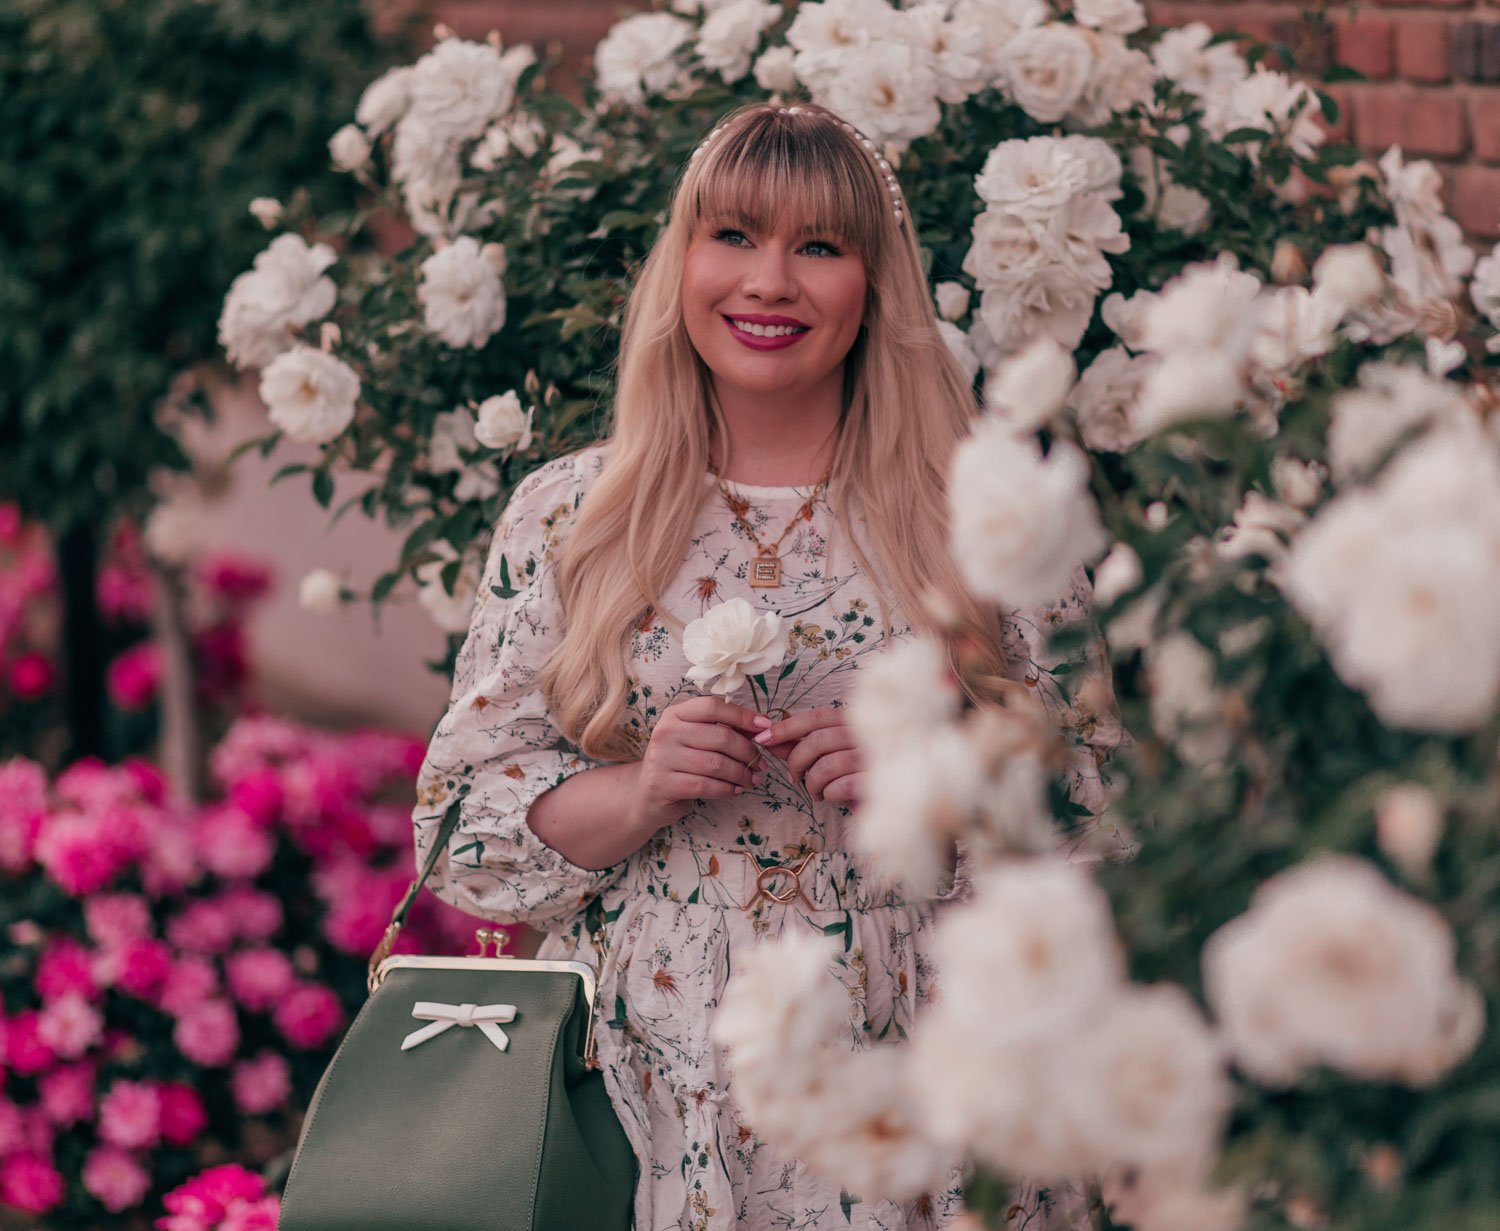 Feminine fashion blogger Elizabeth Hugen of Lizzie in Lace shares her spring 2021 bucket list along with a girly spring outfit idea including this floral Chicwish dress and Sequin Jewelry initial necklace